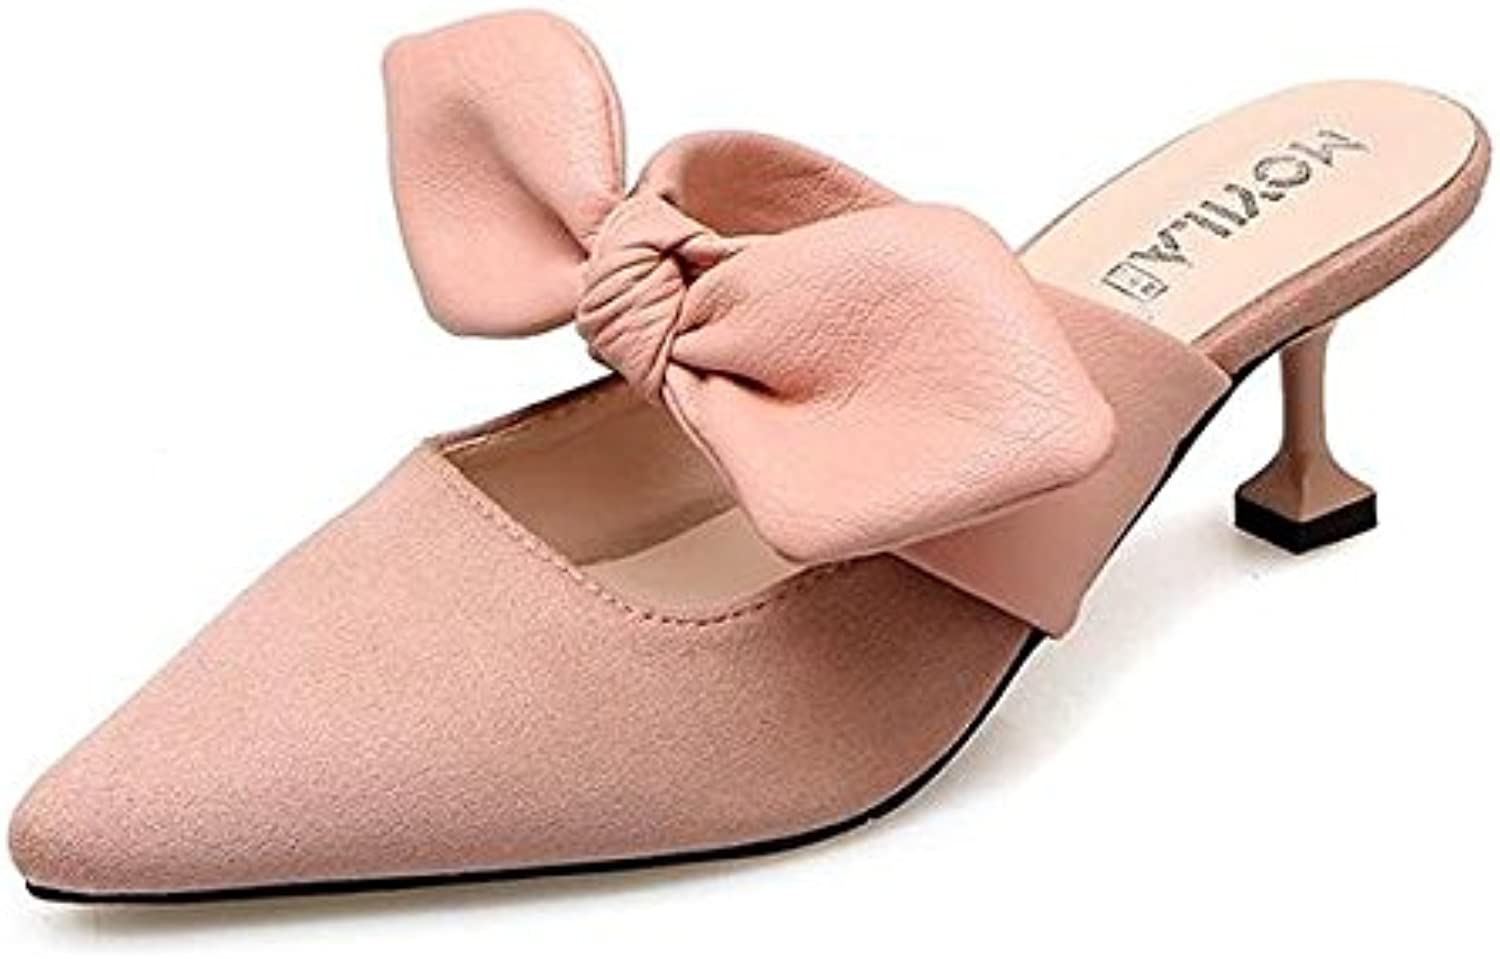 Lapink Women's Cortical Bow Muller Slippers